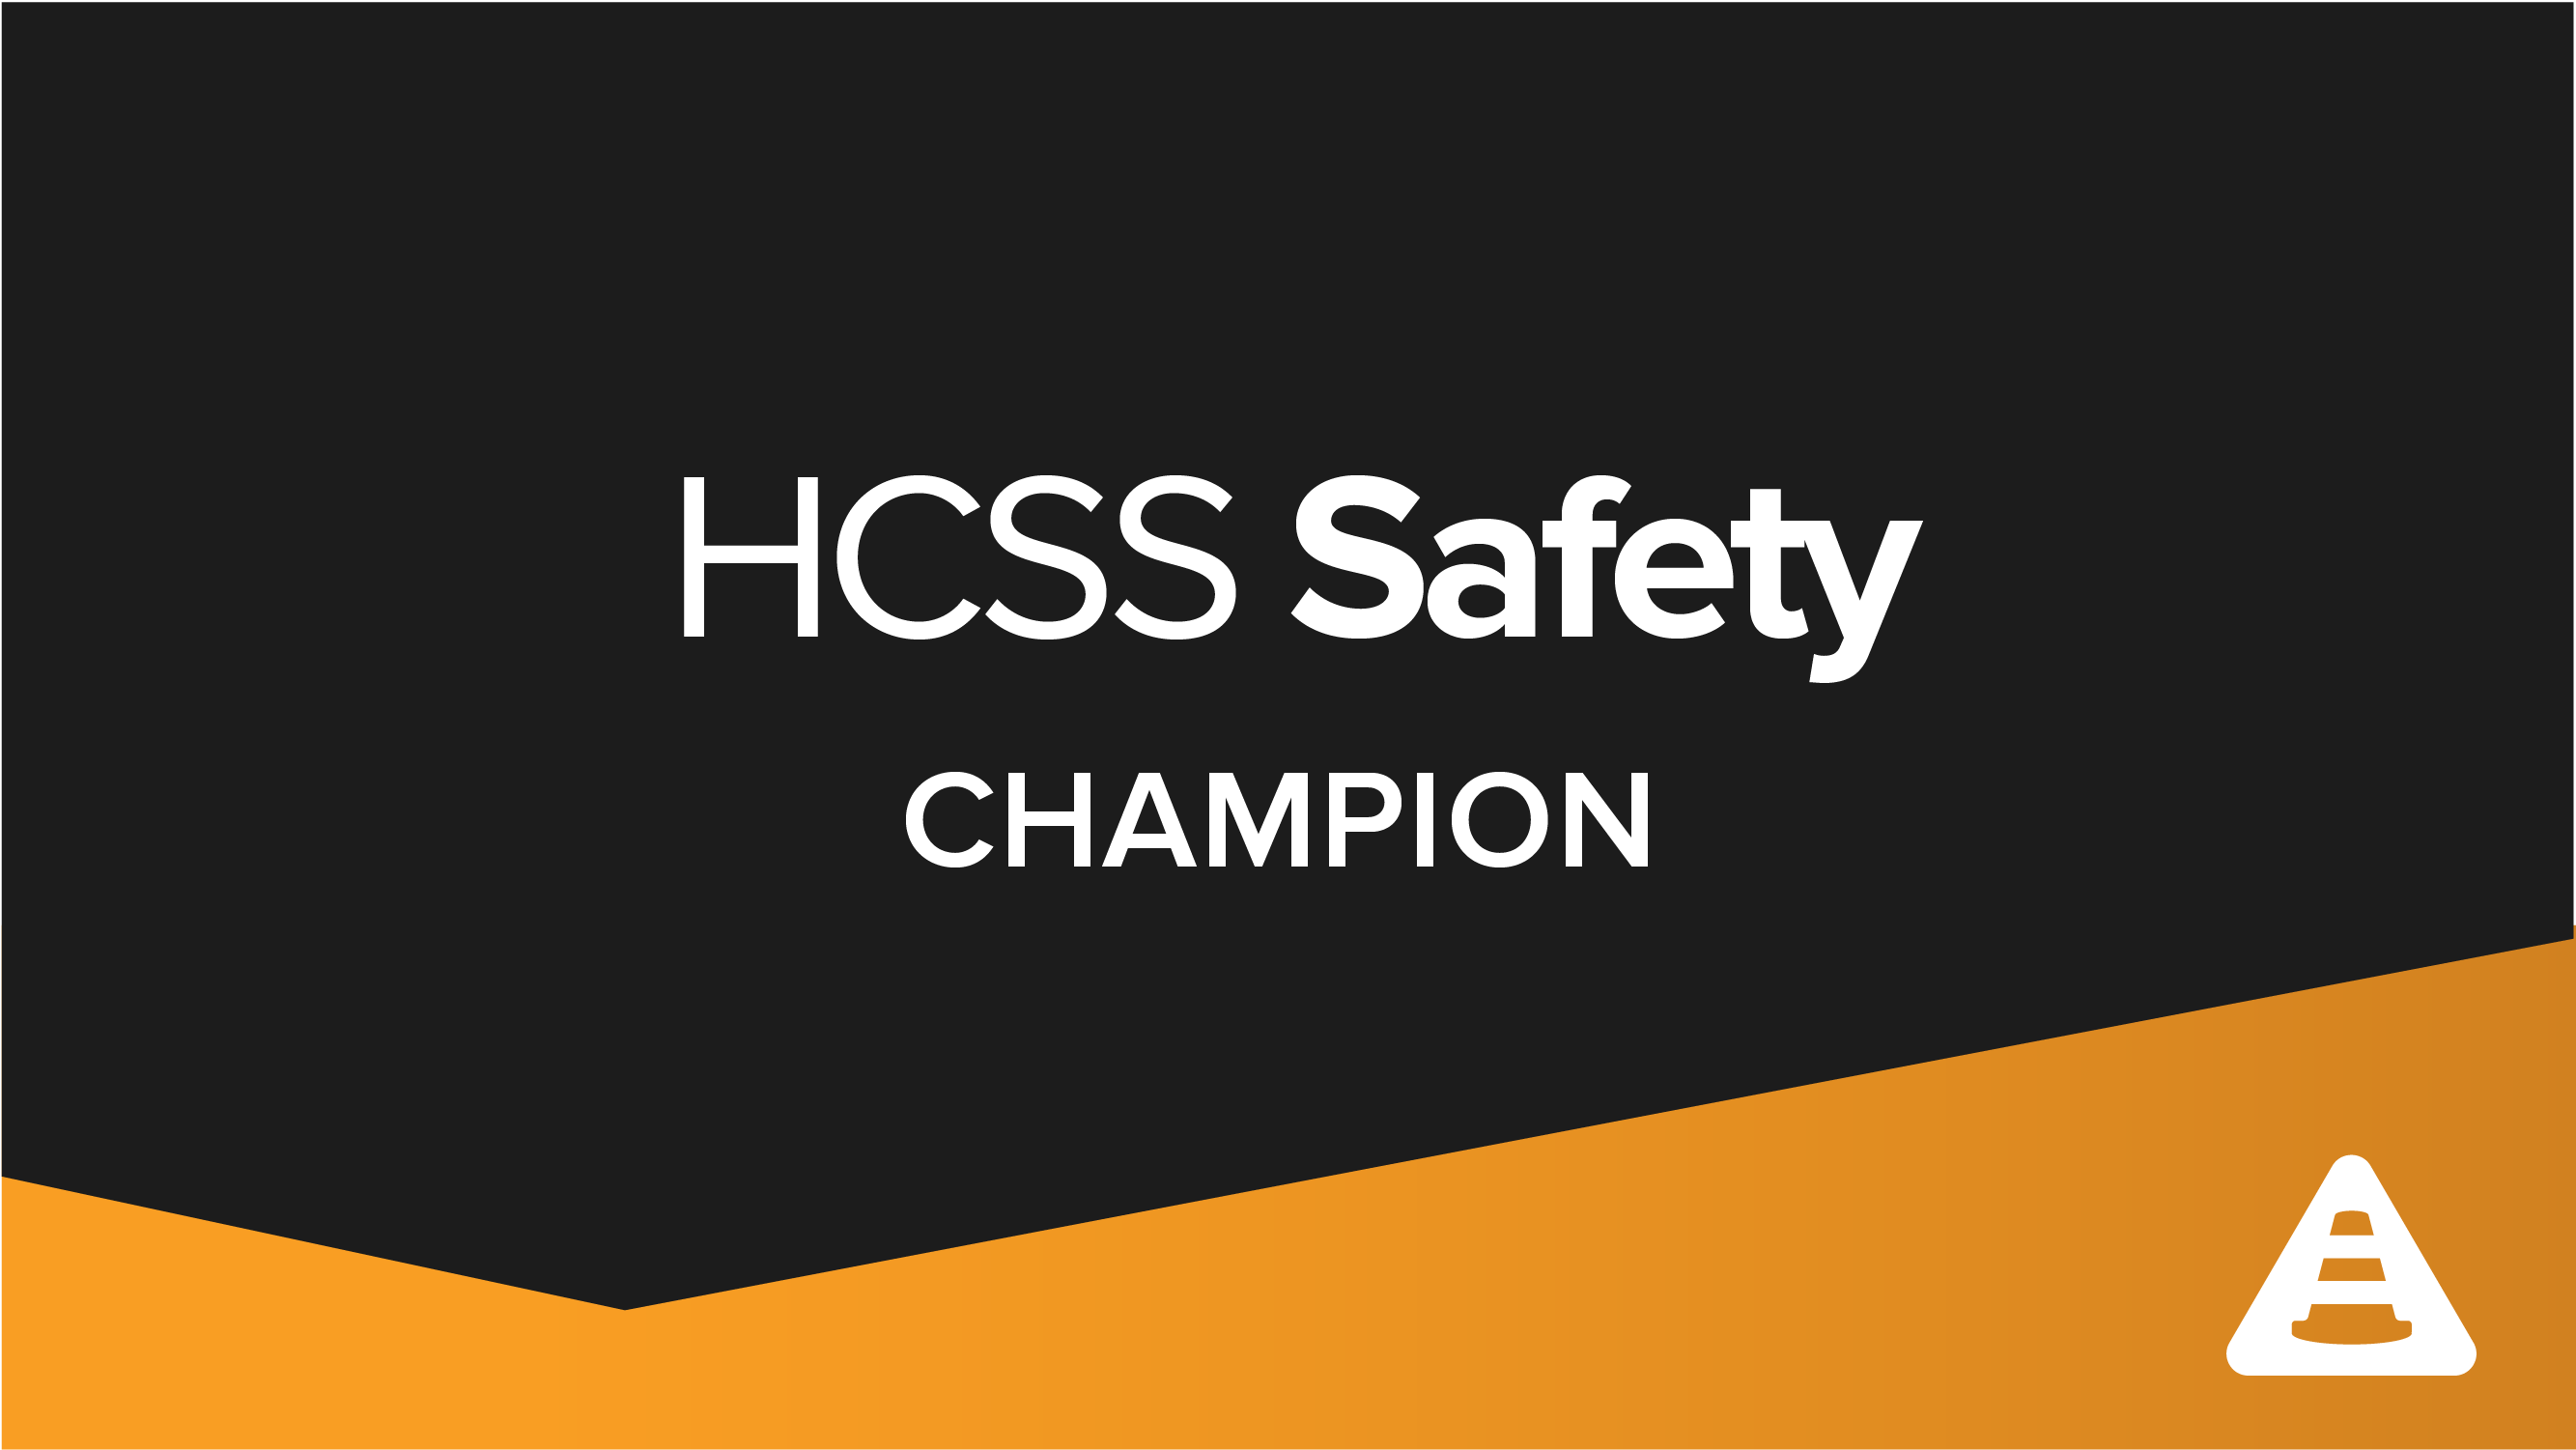 Safety 101: Preparing for Safety Implementation